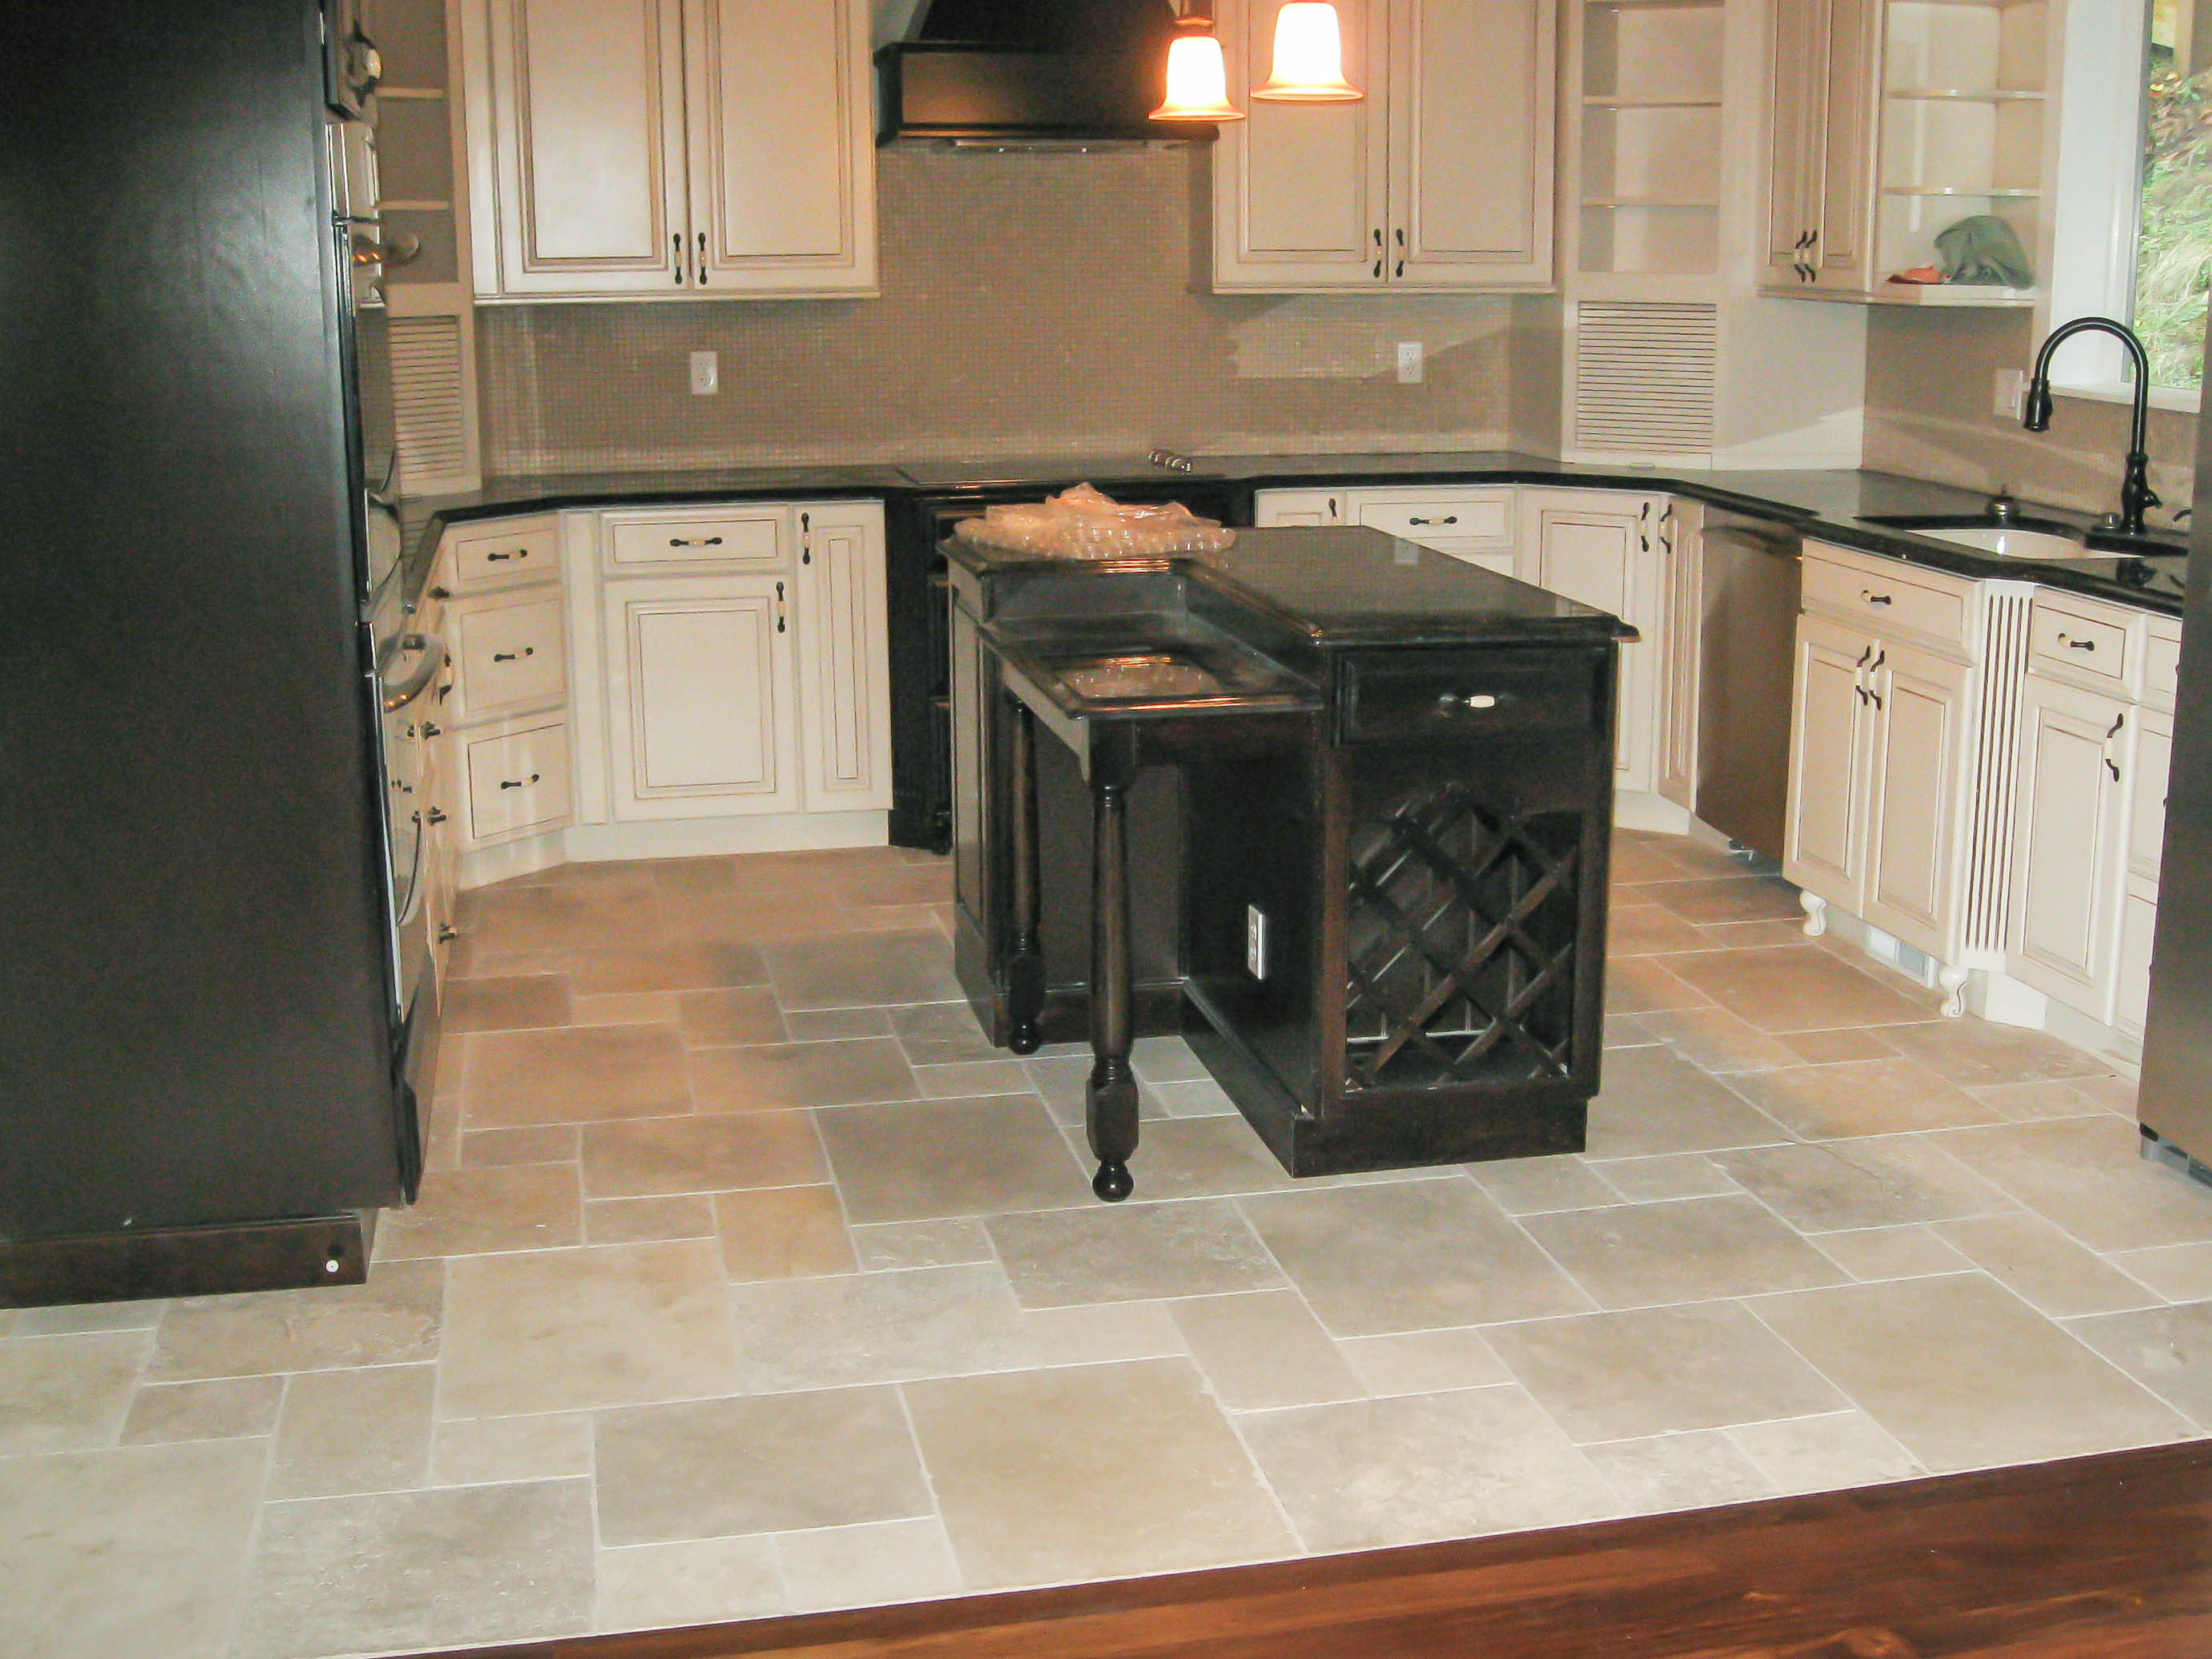 Kitchen floors gallery seattle tile contractor irc tile services kitchen floor dailygadgetfo Gallery